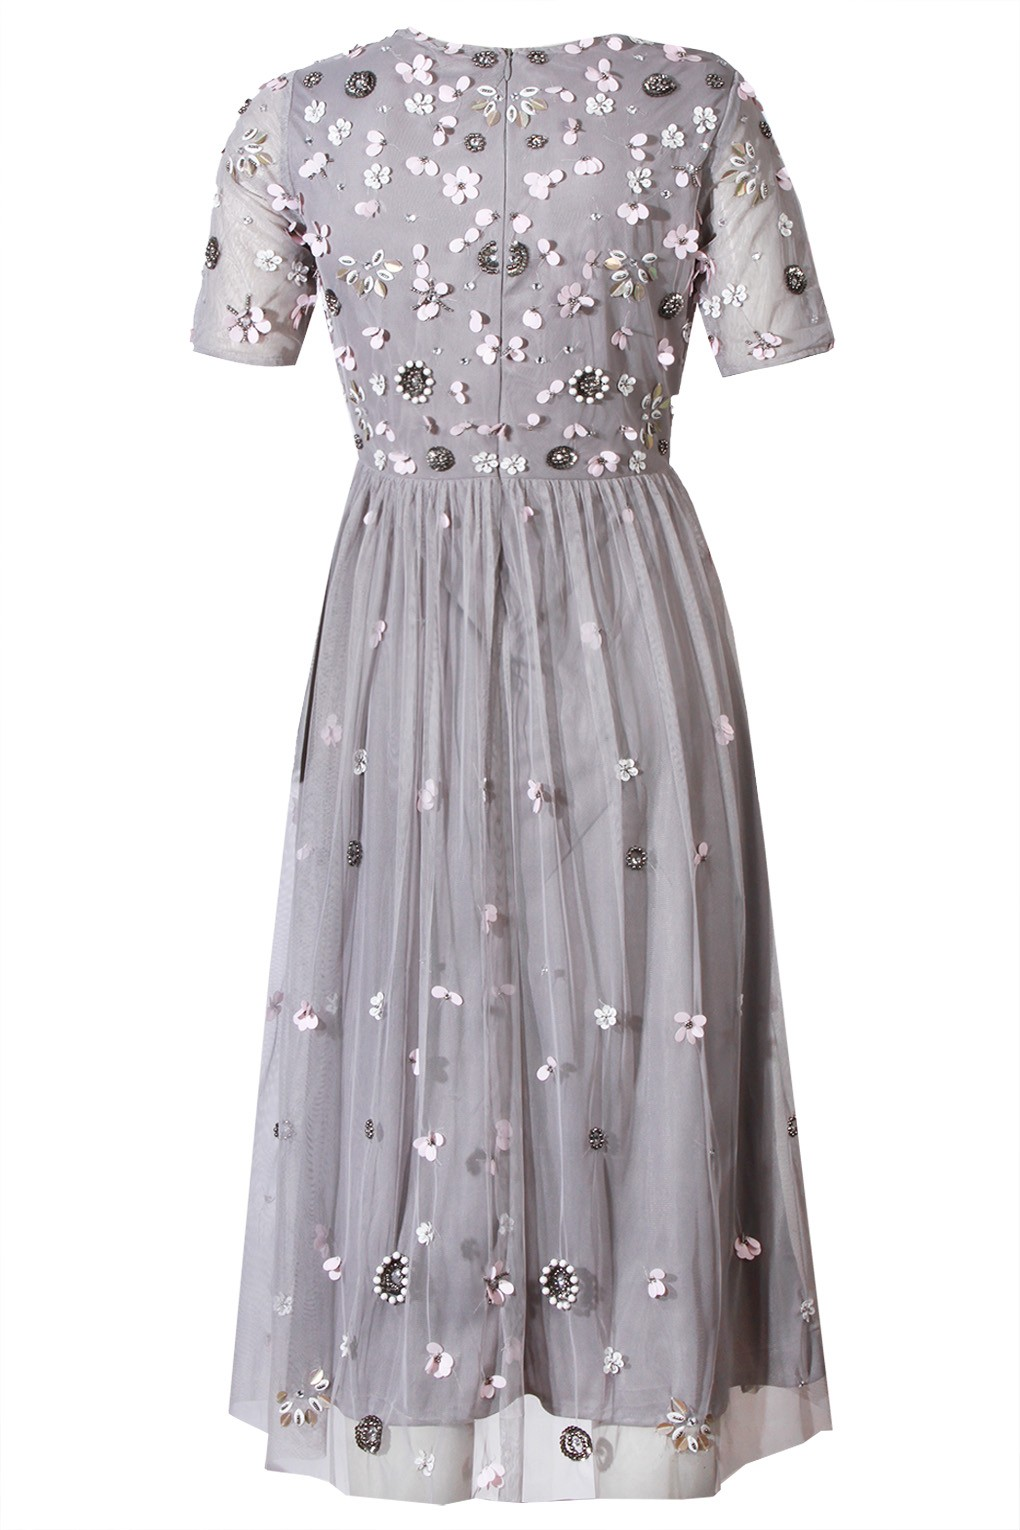 Lace Amp Beads Baby Grey Dress Party Dresses